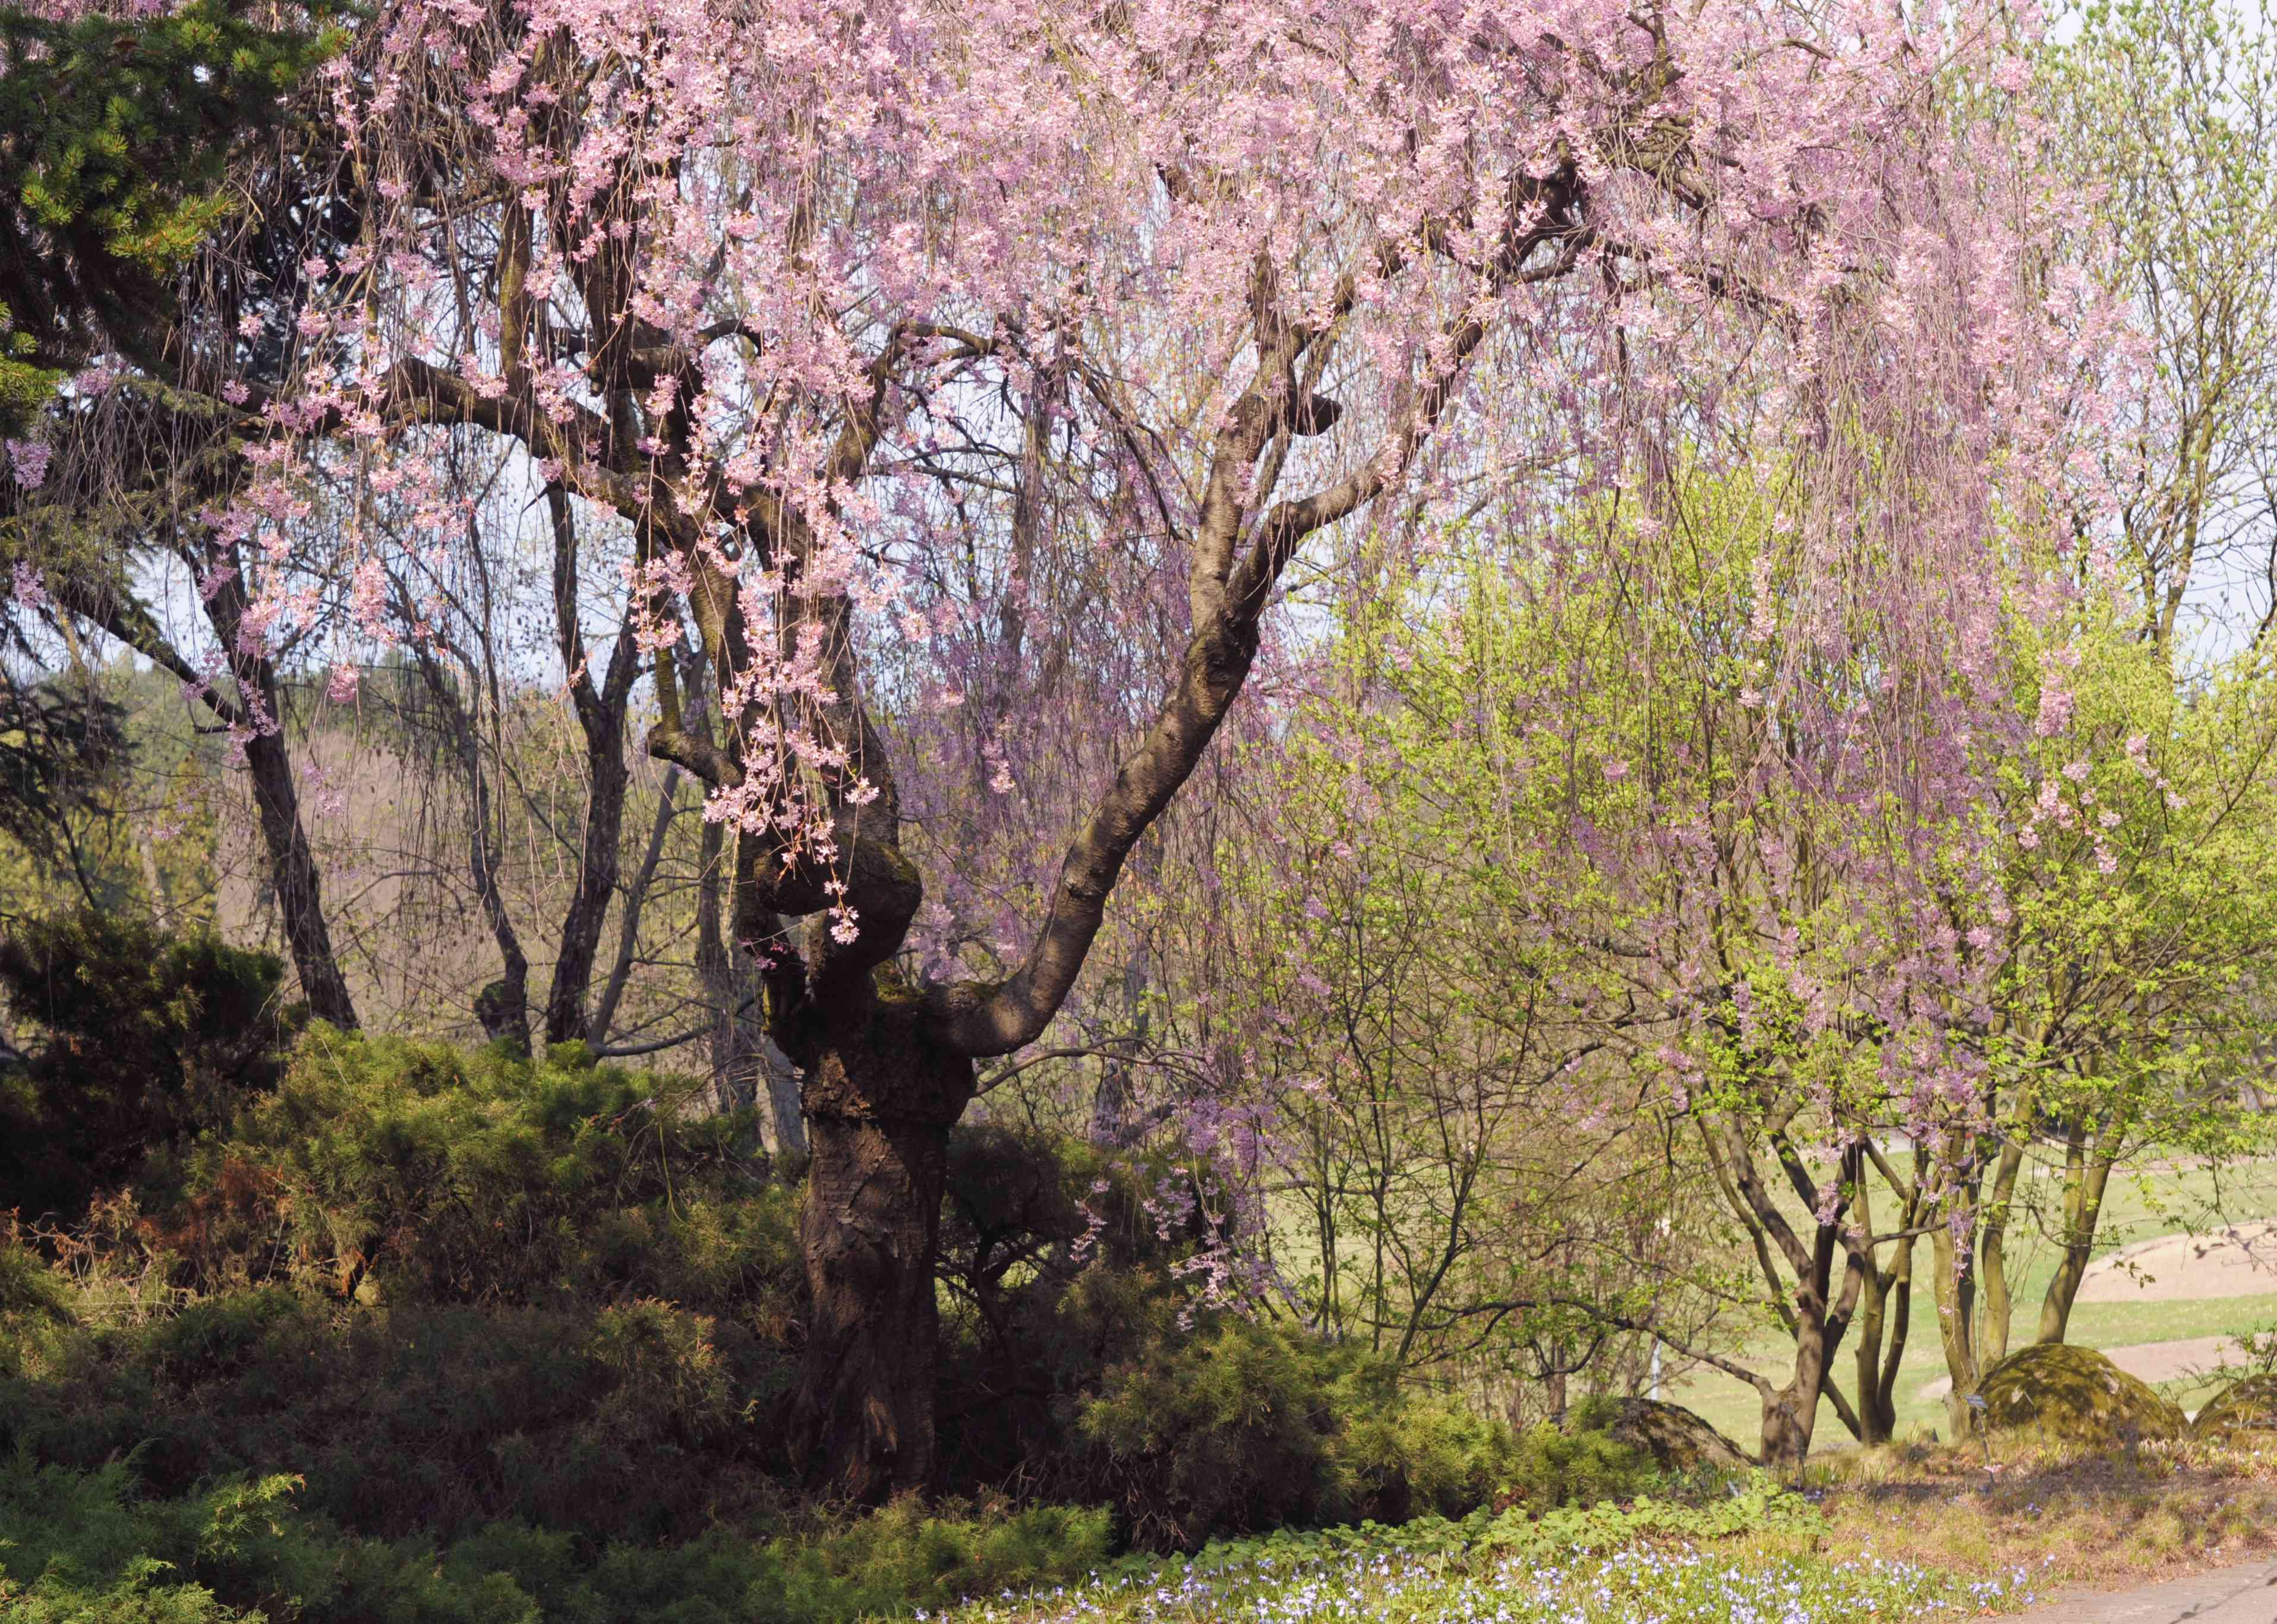 Japanese weeping cherry tree with long branches with small pink flowers